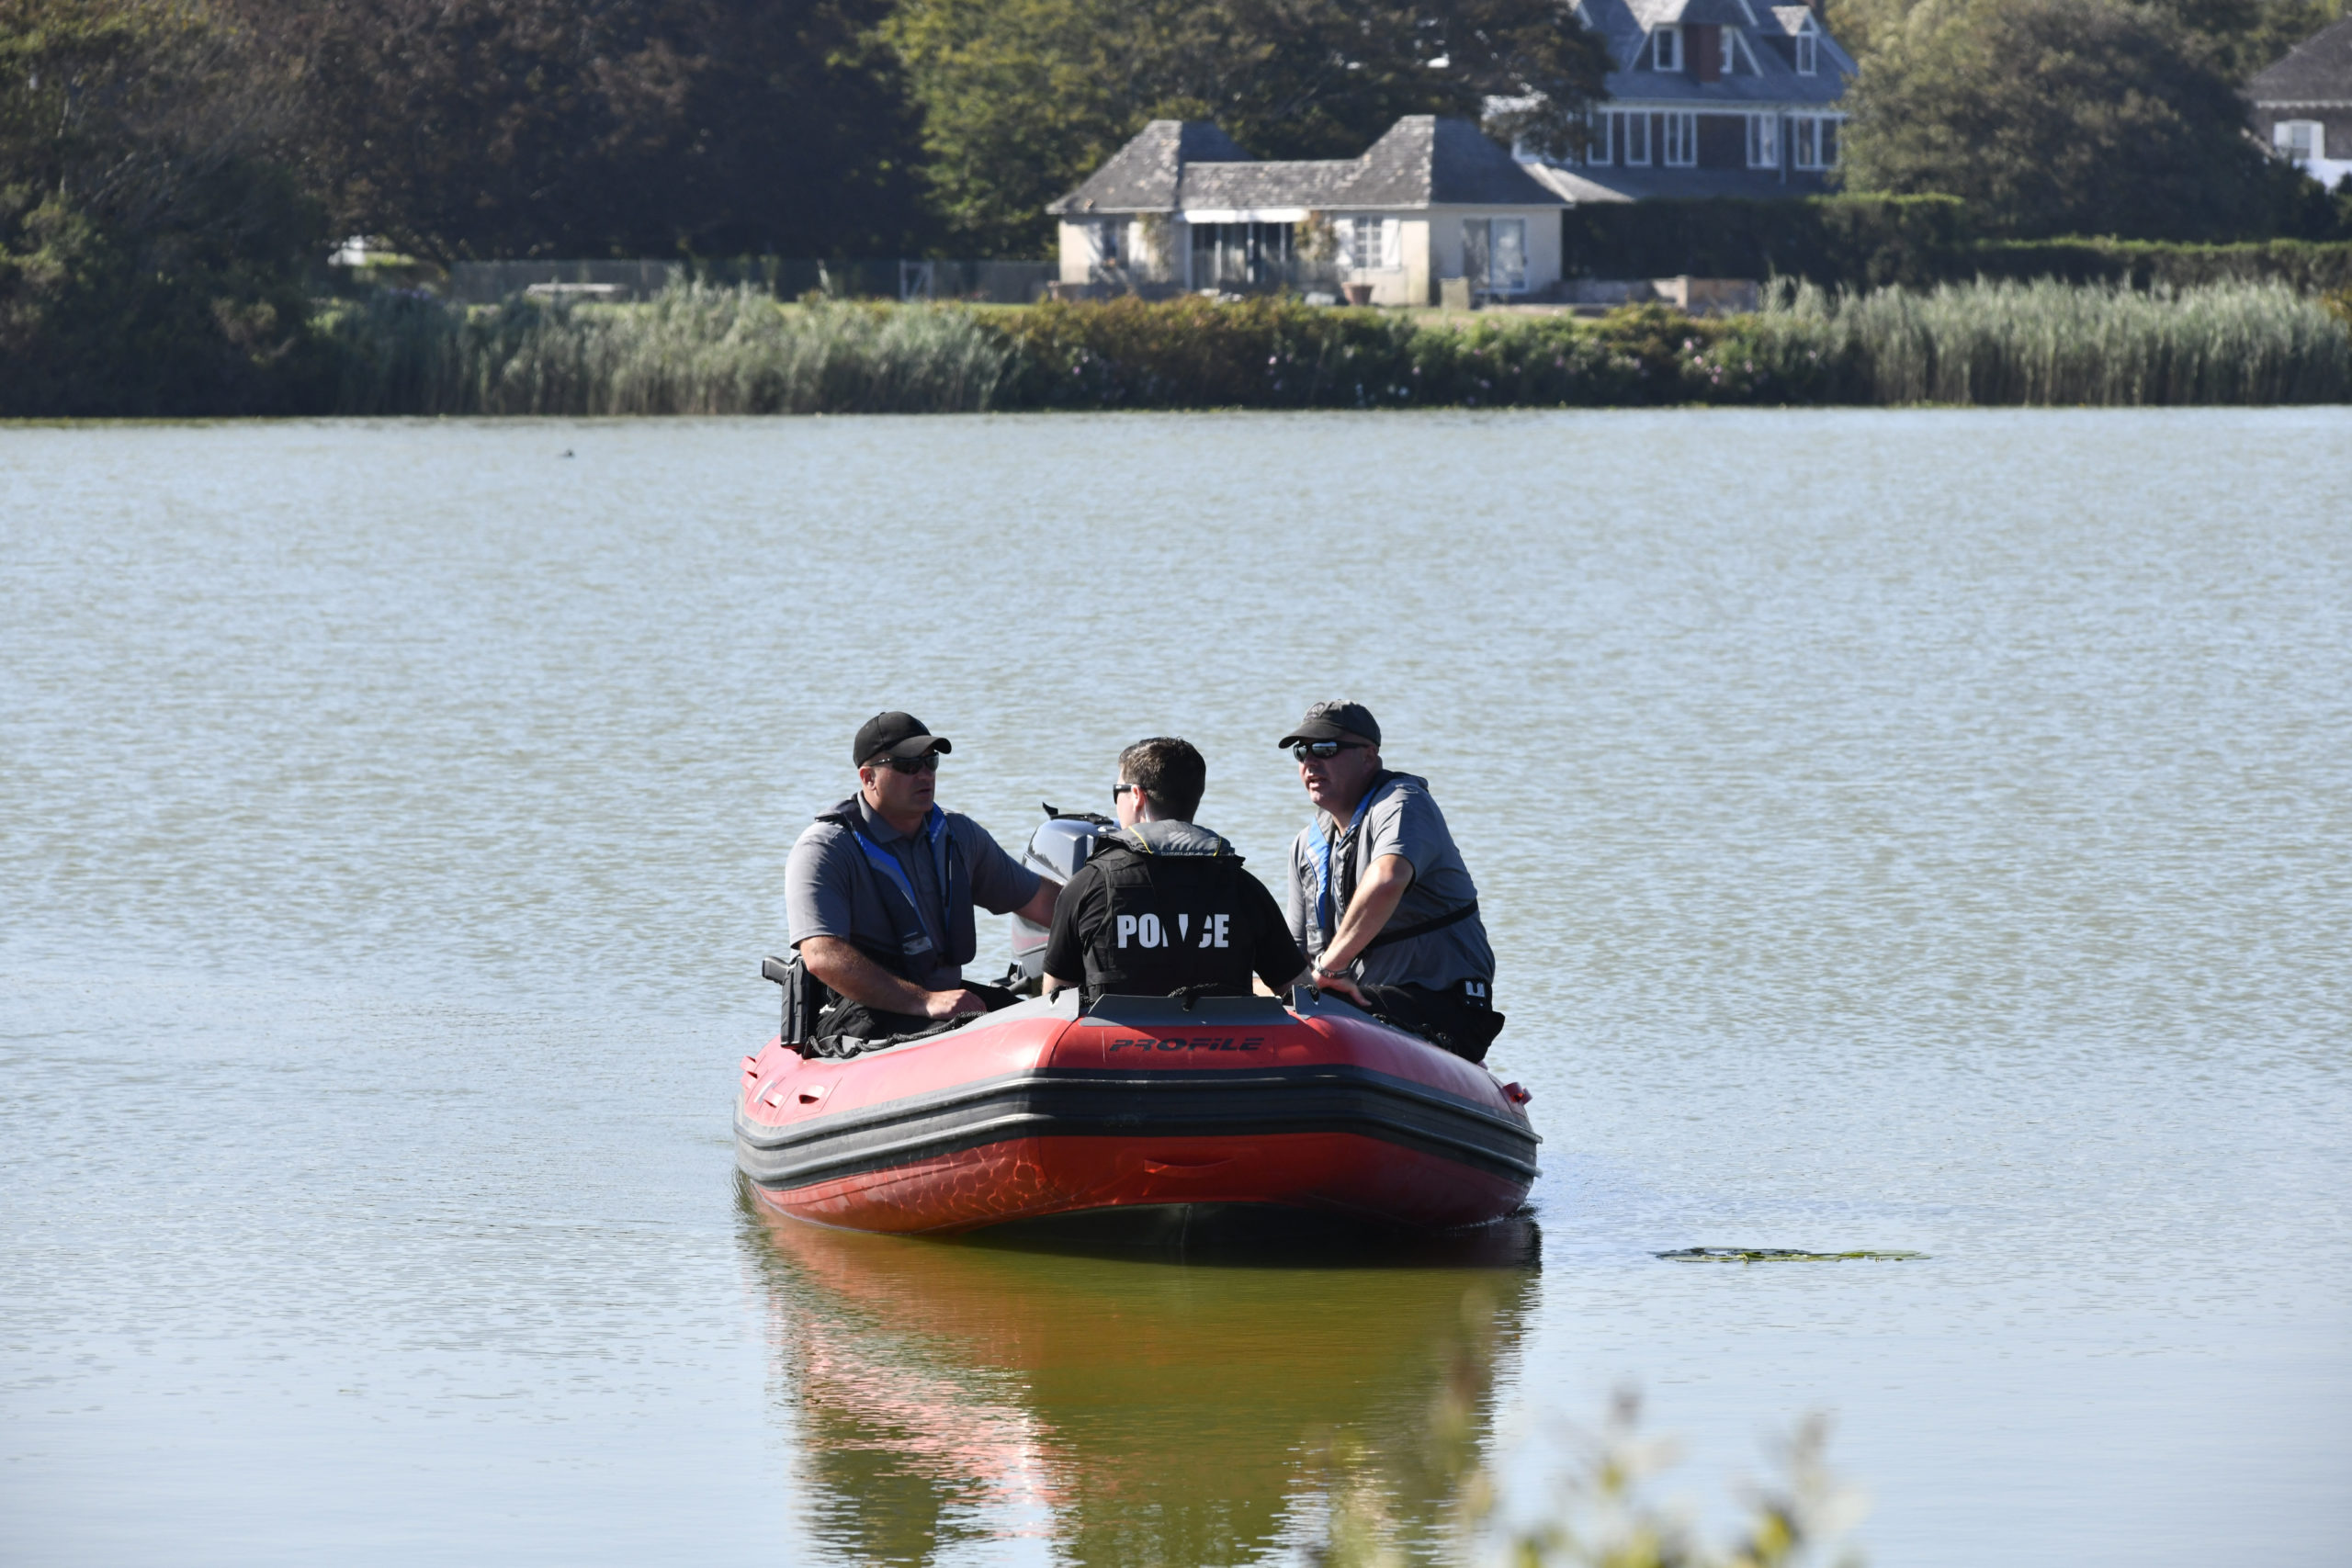 Police on Lake Agawam on Saturday afternoon in advance of Donald Trump's visit for a fundraising event.  DANA SHAW